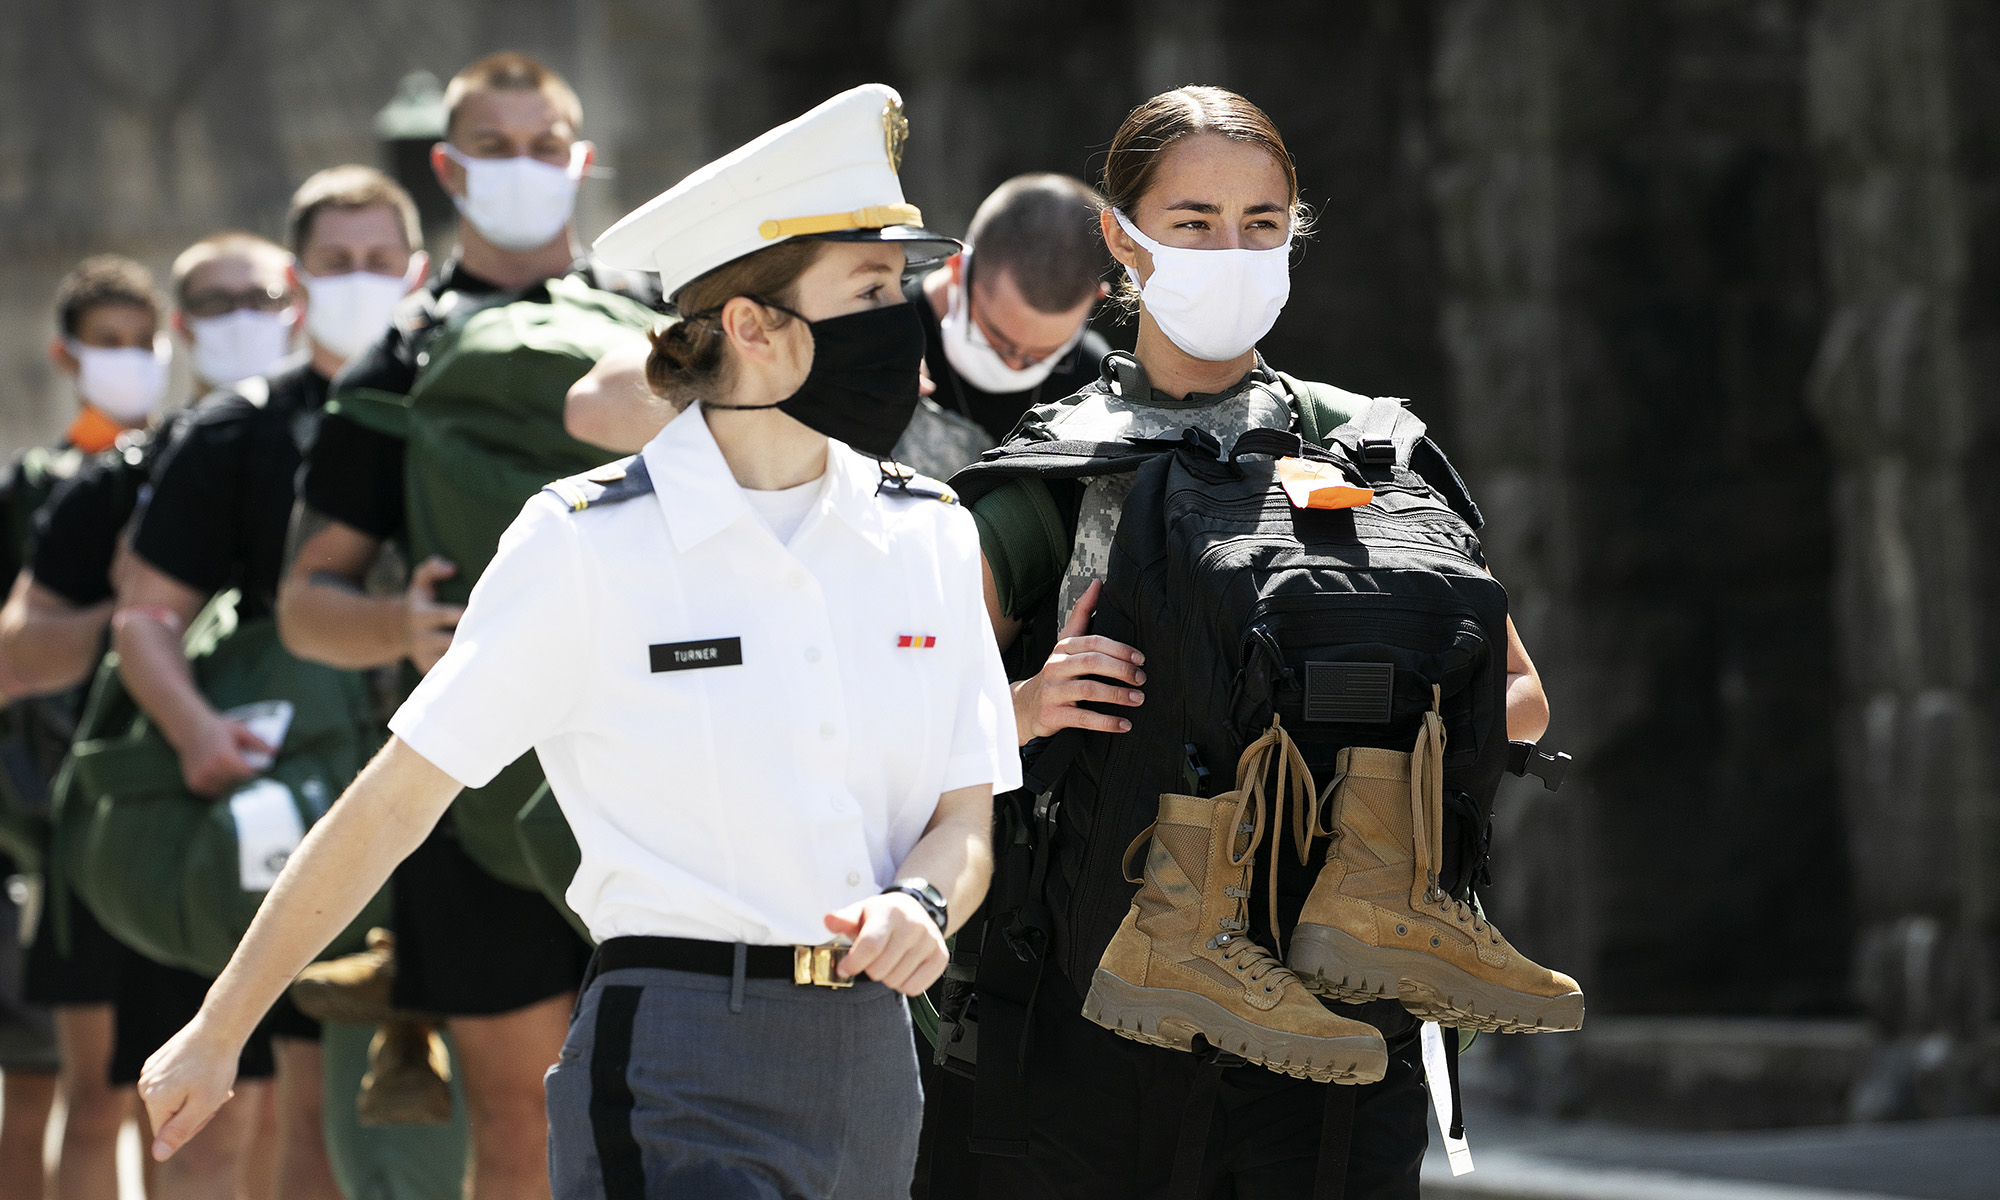 A West Point cadet leads a formation of new cadets on July 13, 2020, at the U.S. Military Academy in West Point, N.Y. The Army is welcoming more than 1,200 candidates from every state. Candidates will be COVID-19 tested immediately upon arrival, wear masks, and practice social distancing. (Mark Lennihan/AP)